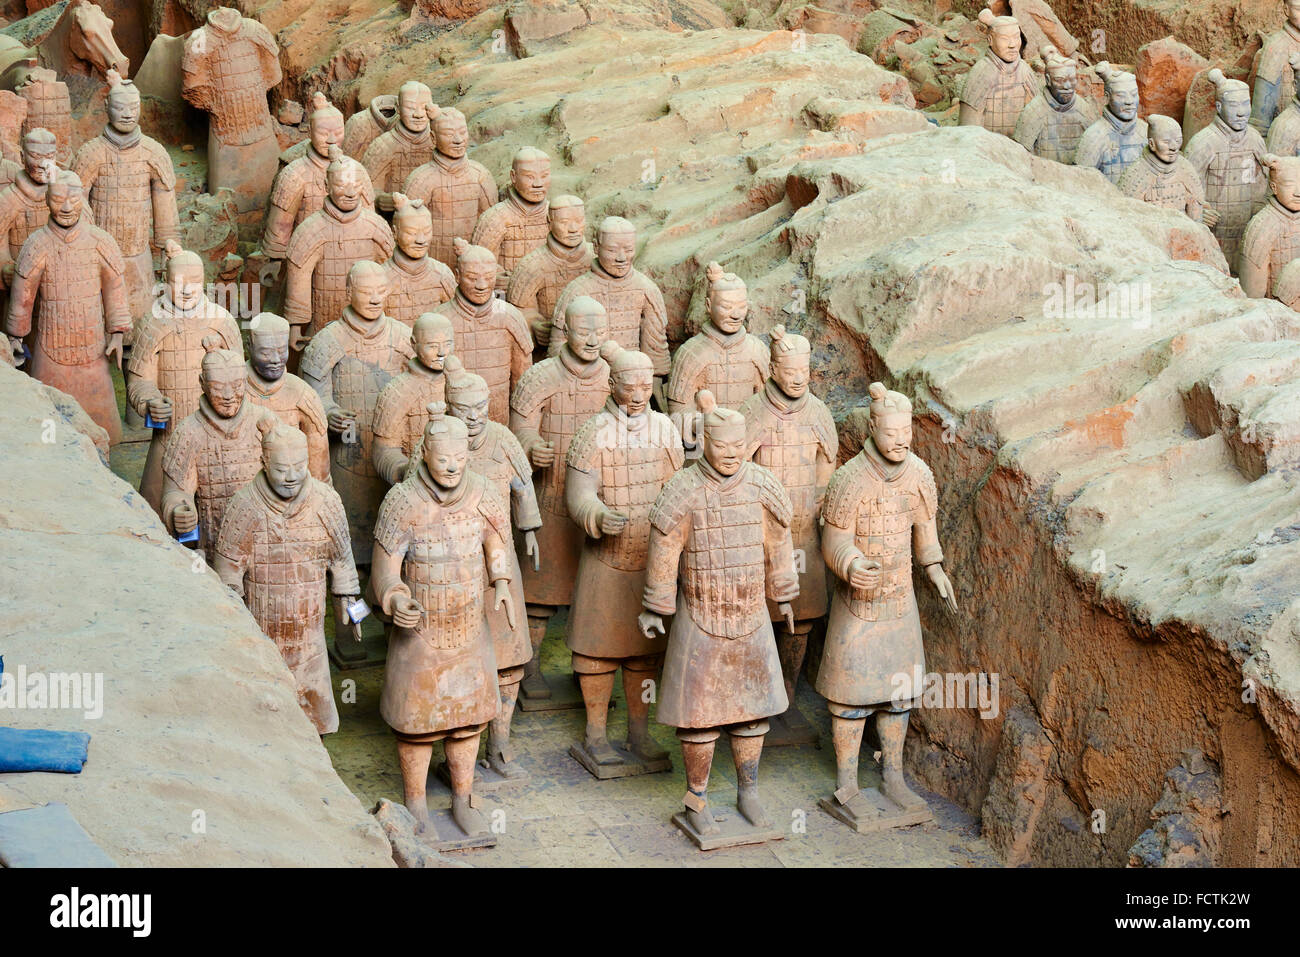 China, Shaanxi province, Xian, Lintong site, Detail of some of the six thousand statues in the Army of Terracotta - Stock Image